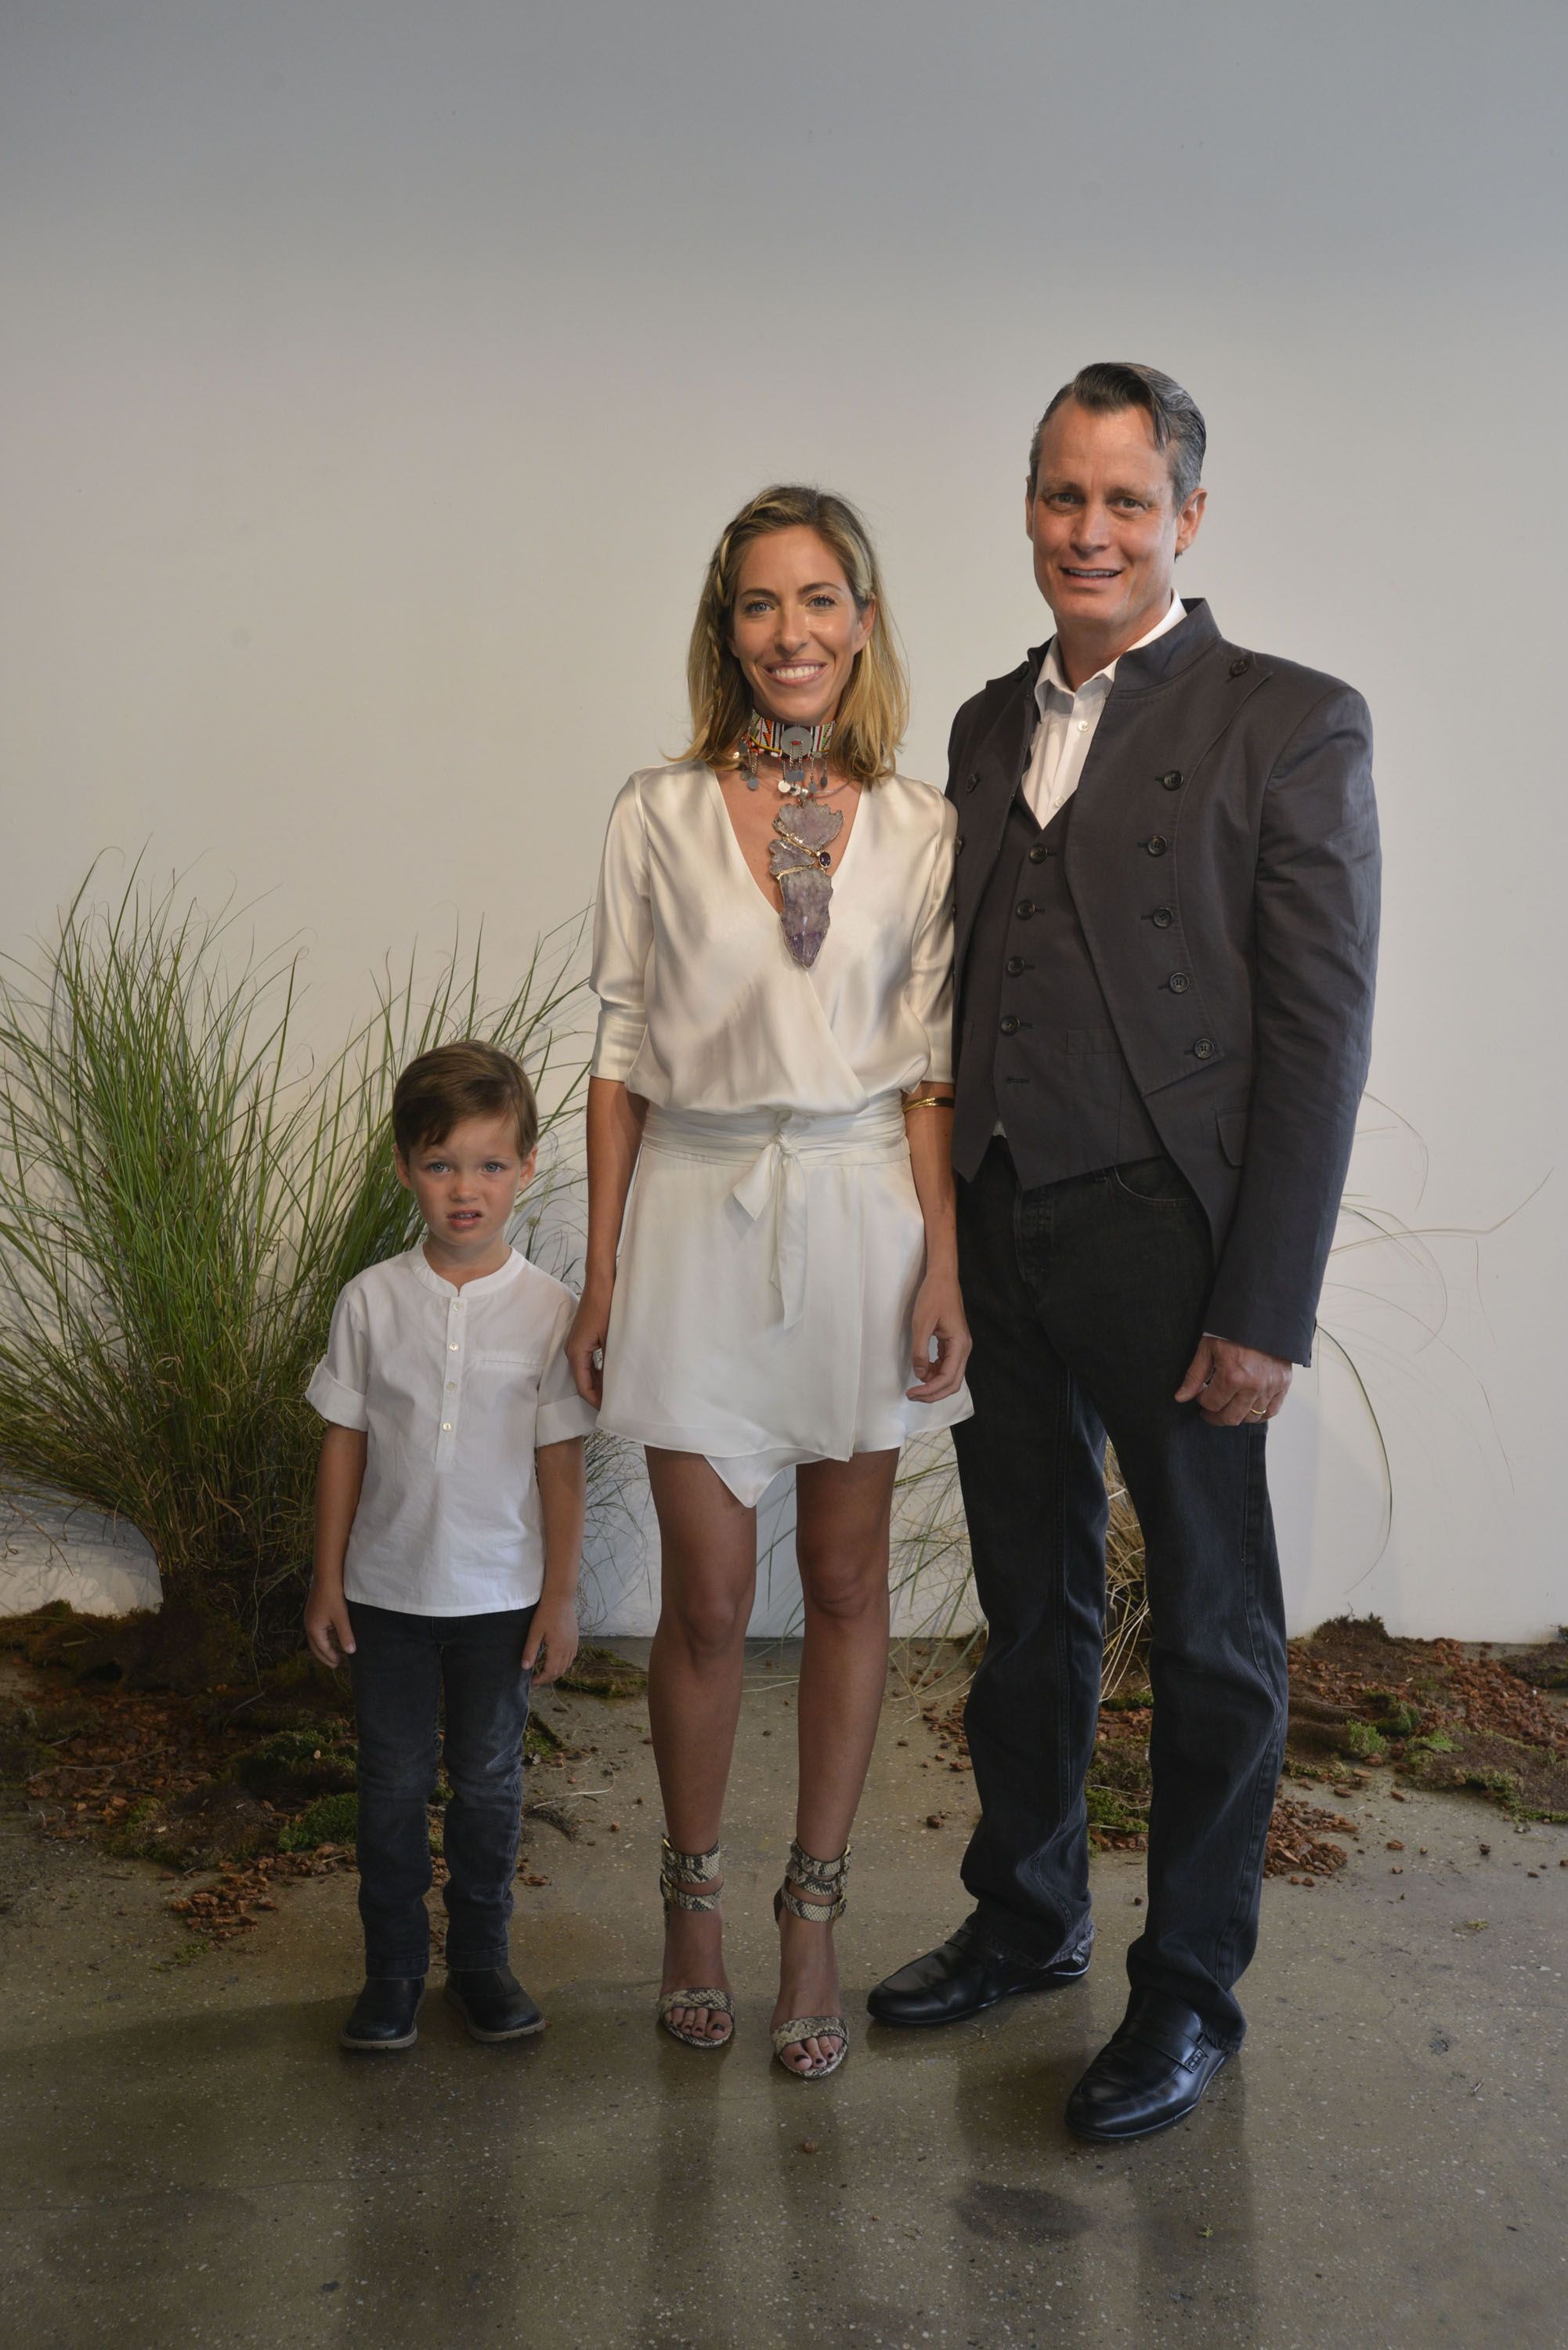 Nicole Hanley Mellon and Matthew Mellon